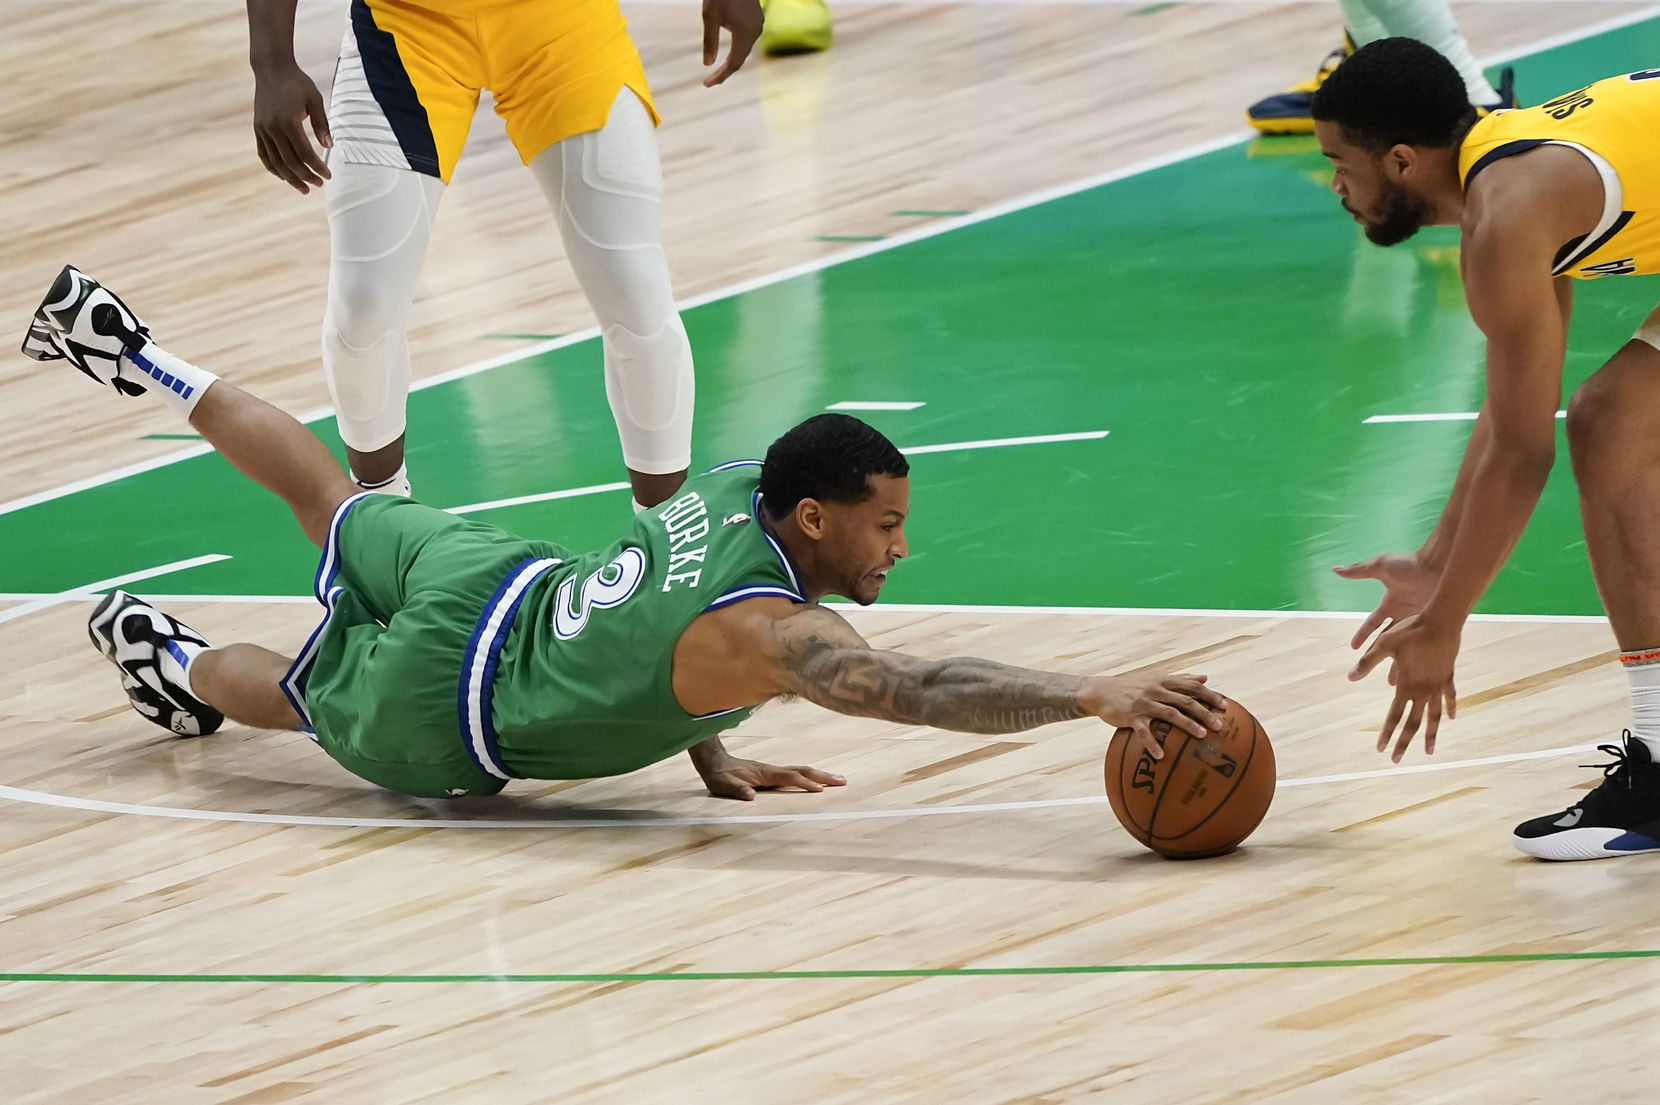 Dallas Mavericks guard Trey Burke (3) dives for a loos ball against Indiana Pacers guard Cassius Stanley during the second half of an NBA basketball game at American Airlines Center on Friday, March 26, 2021, in Dallas.